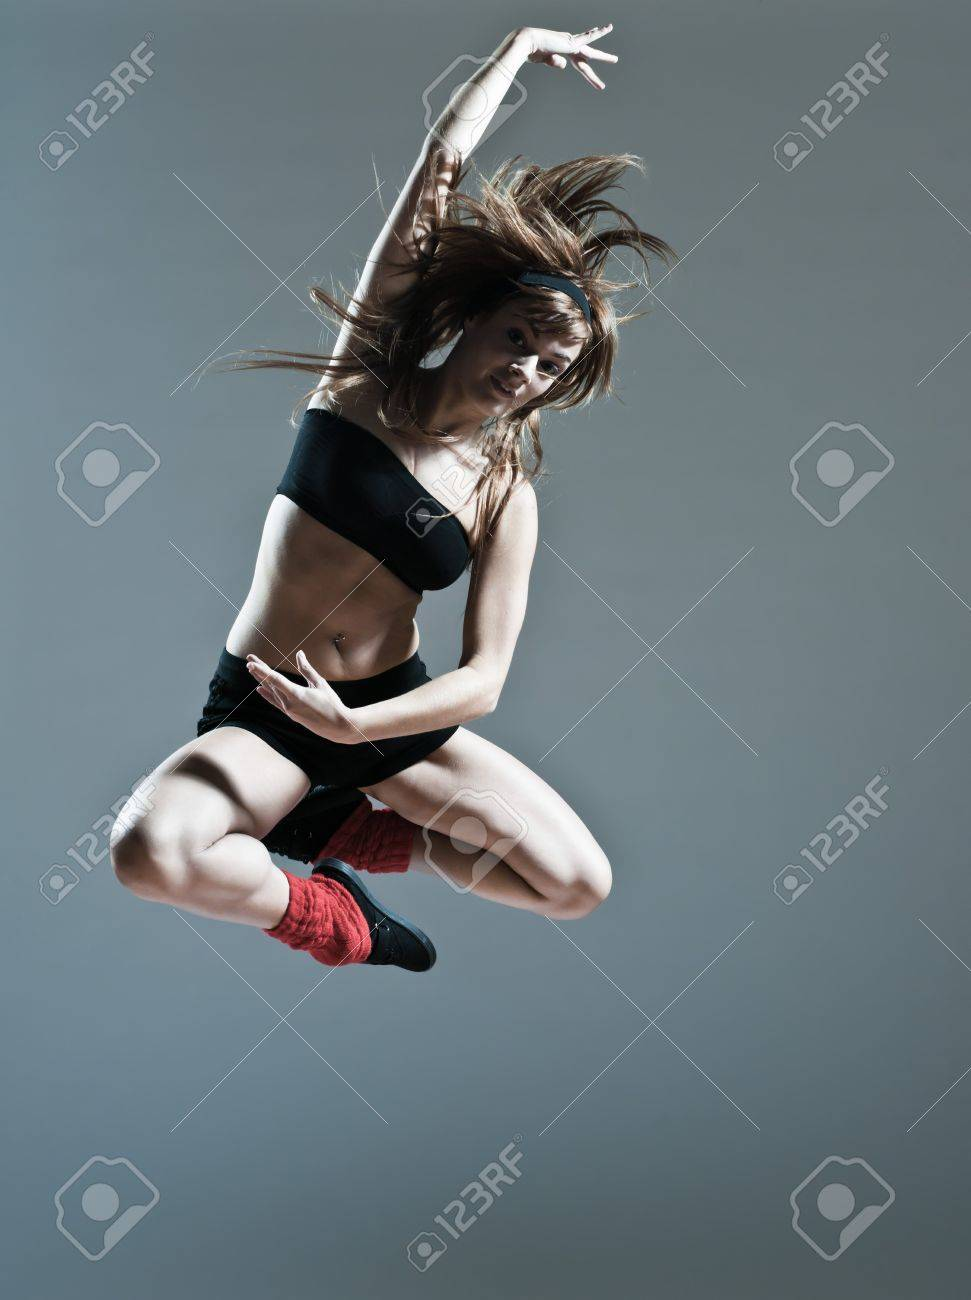 beautiful young caucasian woman girl dancer ballet breakdance leap jump on studio isolated background Stock Photo - 11766217